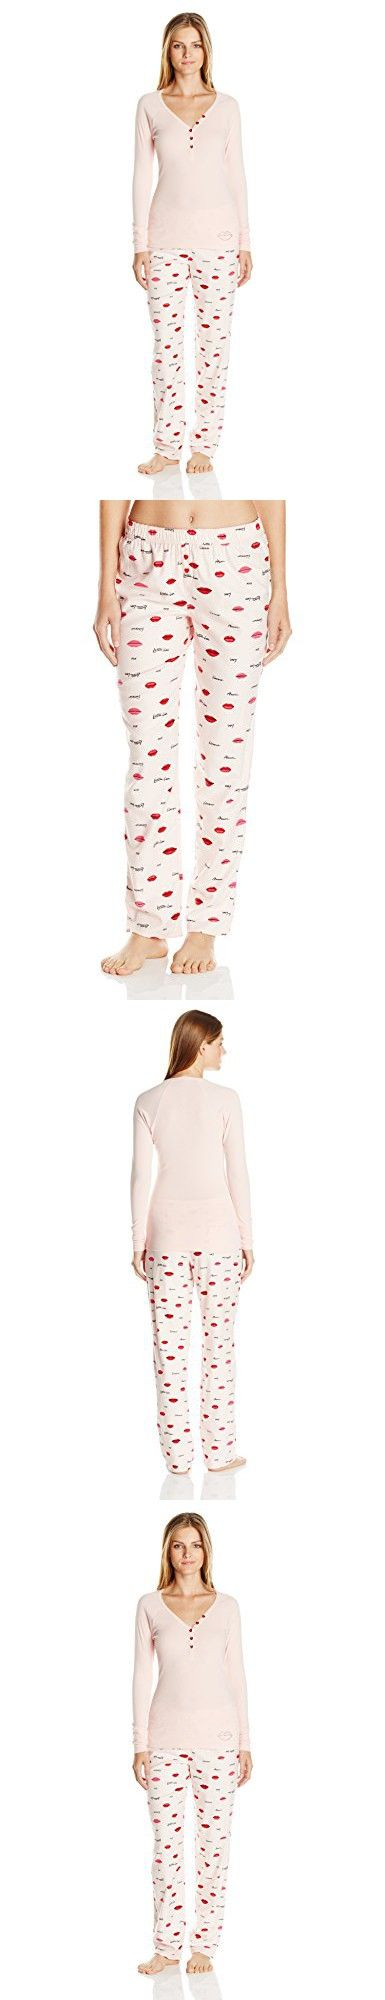 Betsey Johnson Women's Gift Packaged Rib and Flannel Pj, Lotssa Love Lips Rose, Large